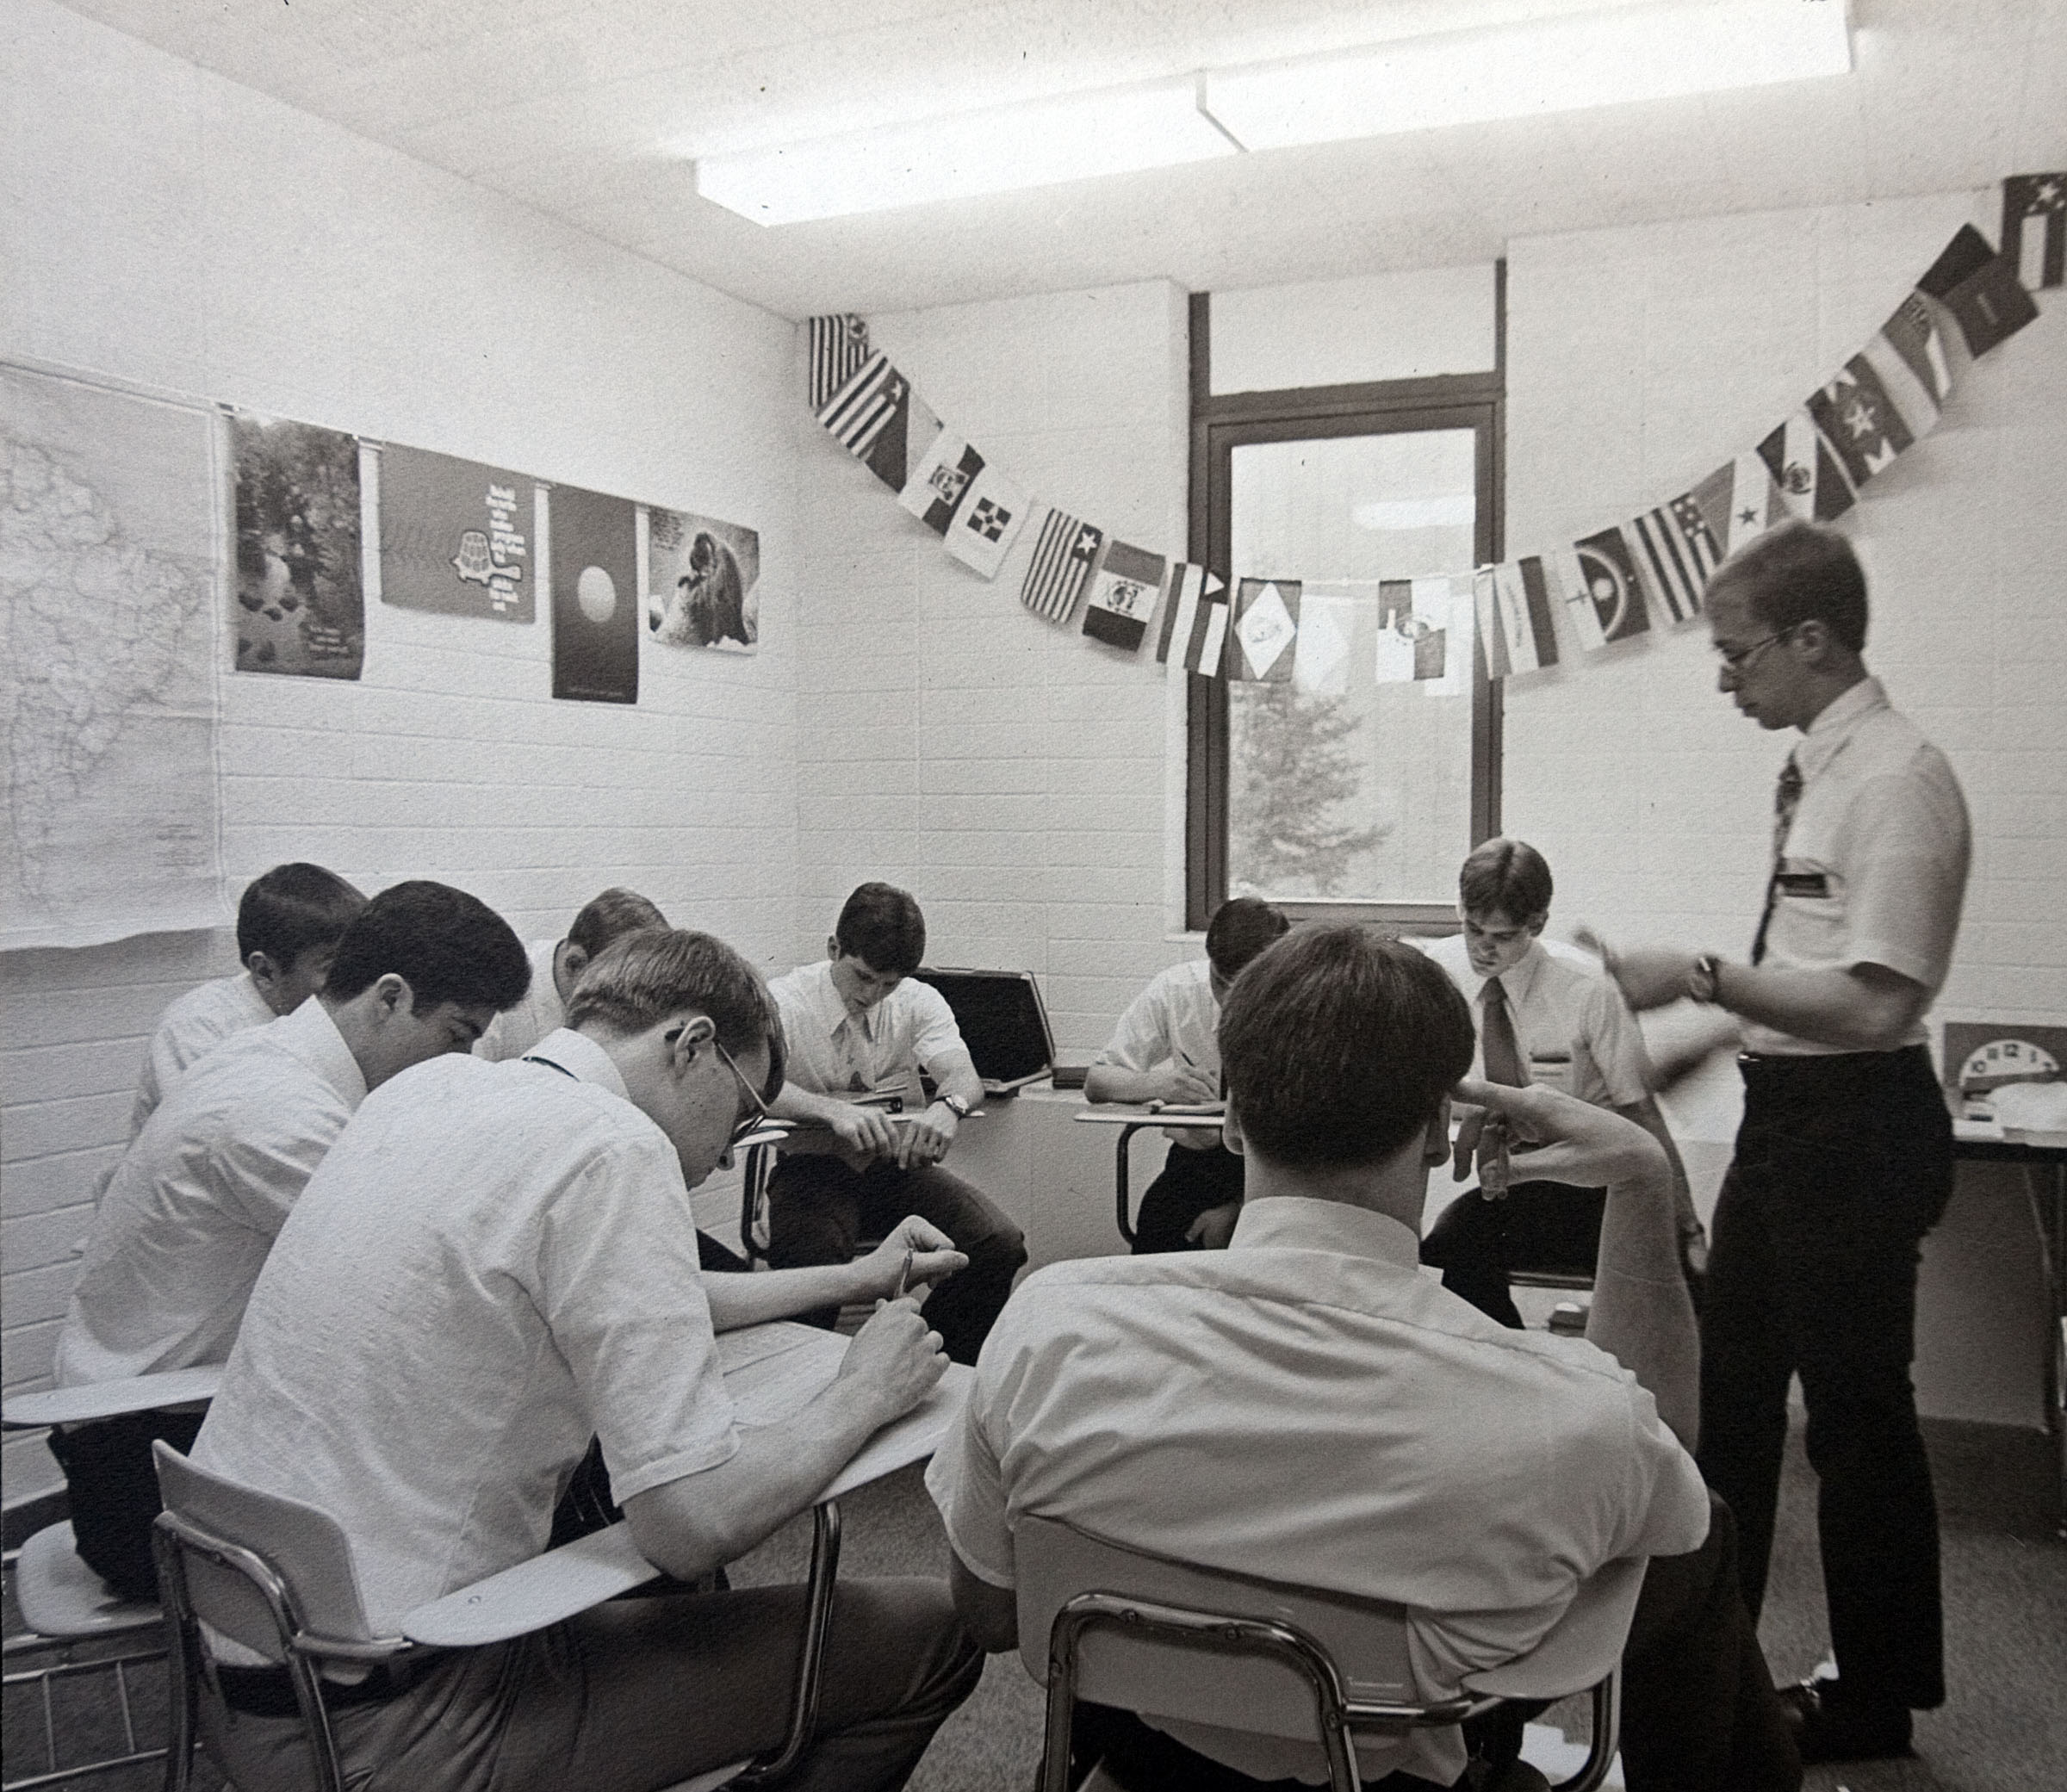 """""""Missionaries spend many classroom hours each day learning foreign language and missionary discussions, practicing teaching skills, studying scriptures, and developing deeper understanding of gospel doctrines and principles."""" — This is the caption information found on the frame plaque accompany this photo, one nearly dozen historical photos showing the development of the Language Training Mission and Missionary Training Center facilities in Provo since the 1960s."""